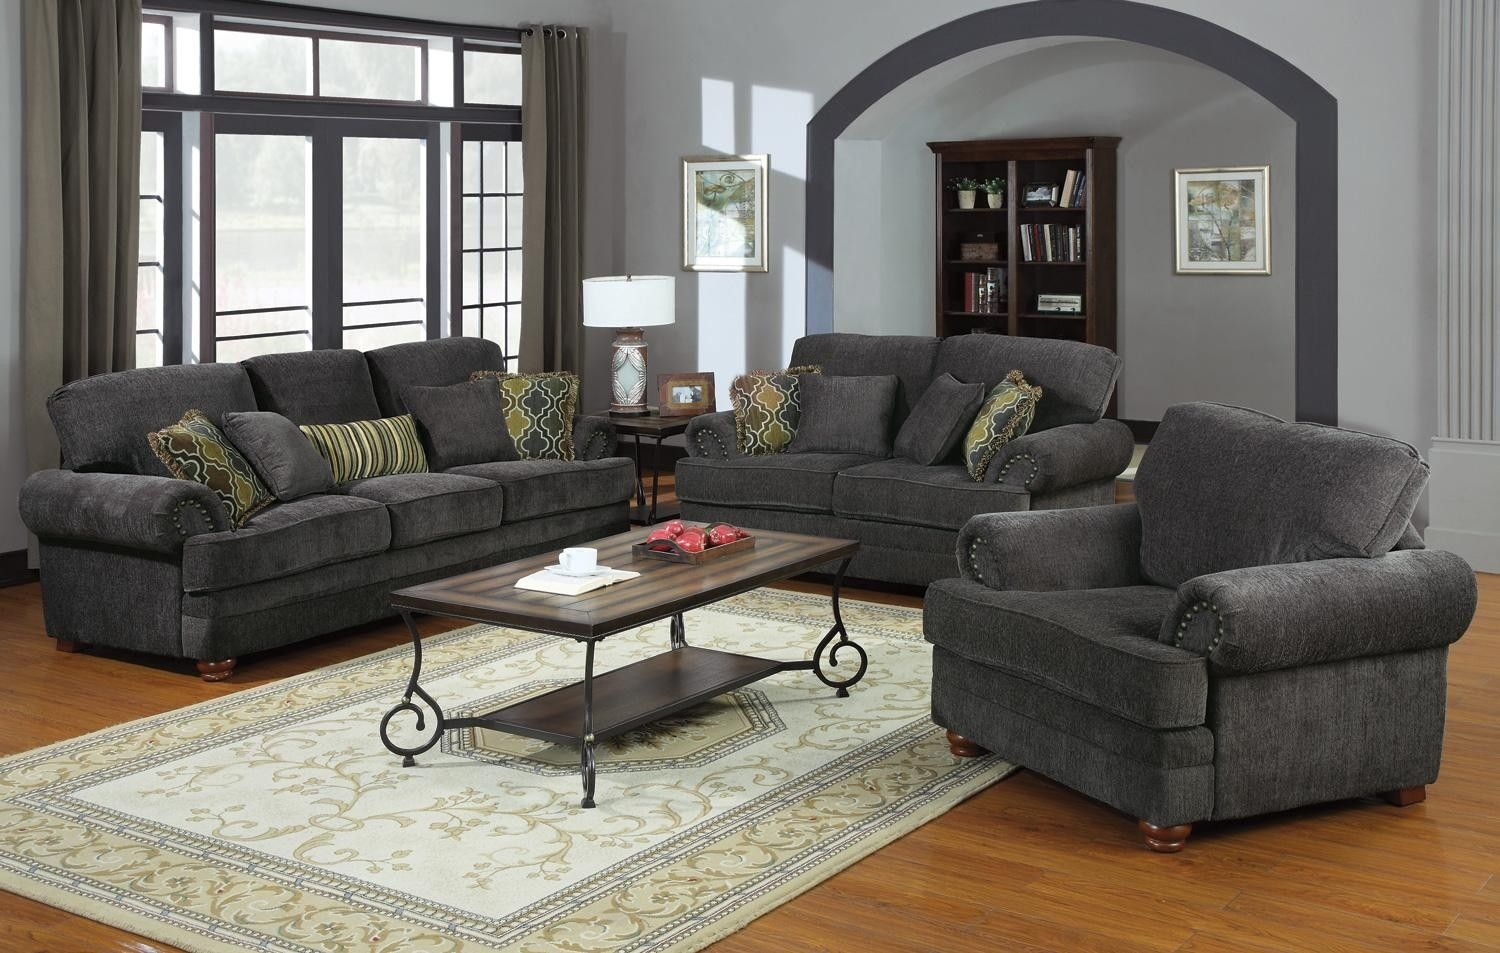 Colton Grey Living Room Set From Coaster 504401  Coleman Furniture